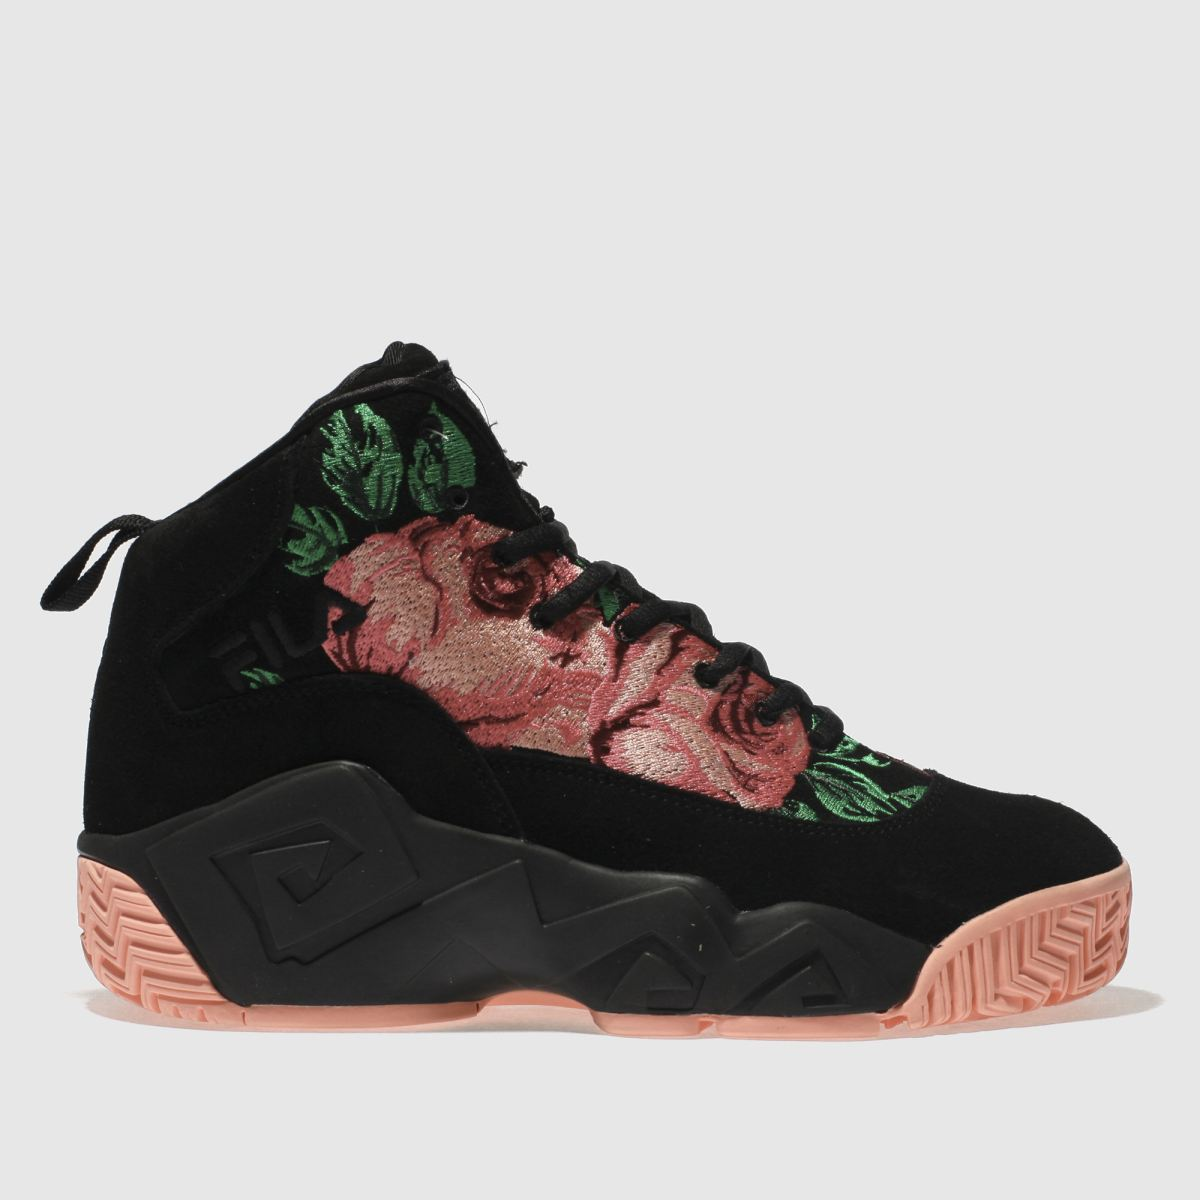 Fila Black & Pink Mb Embroidery Trainers